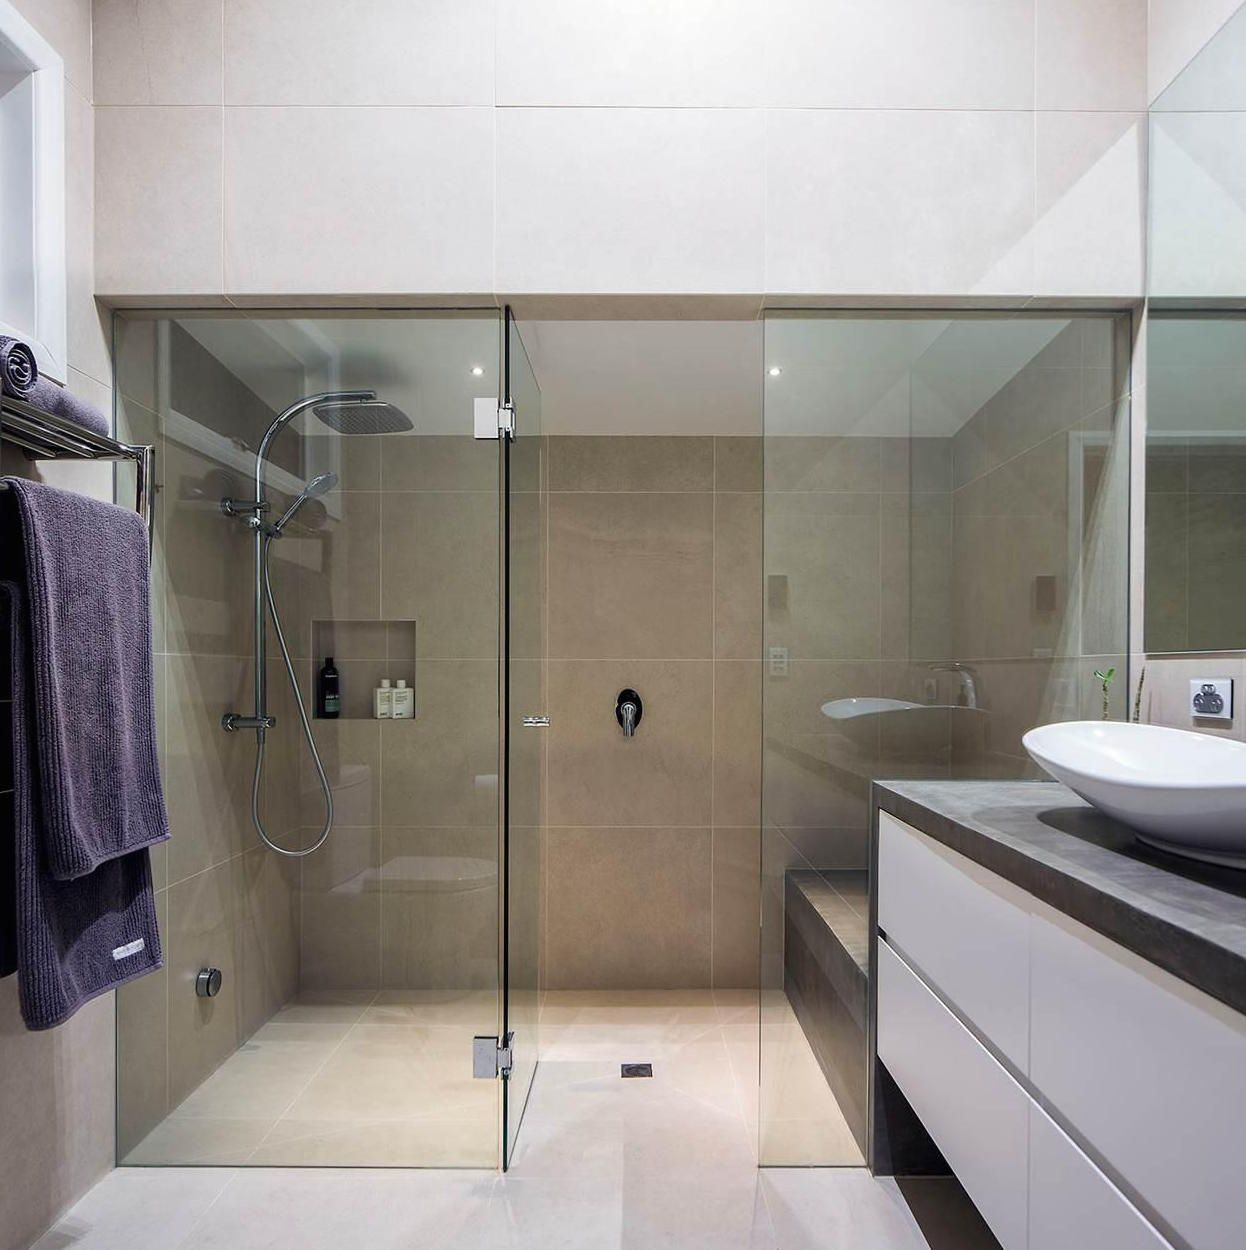 get custom bathroom renovation done in melbourne on bathroom renovation ideas melbourne id=21437